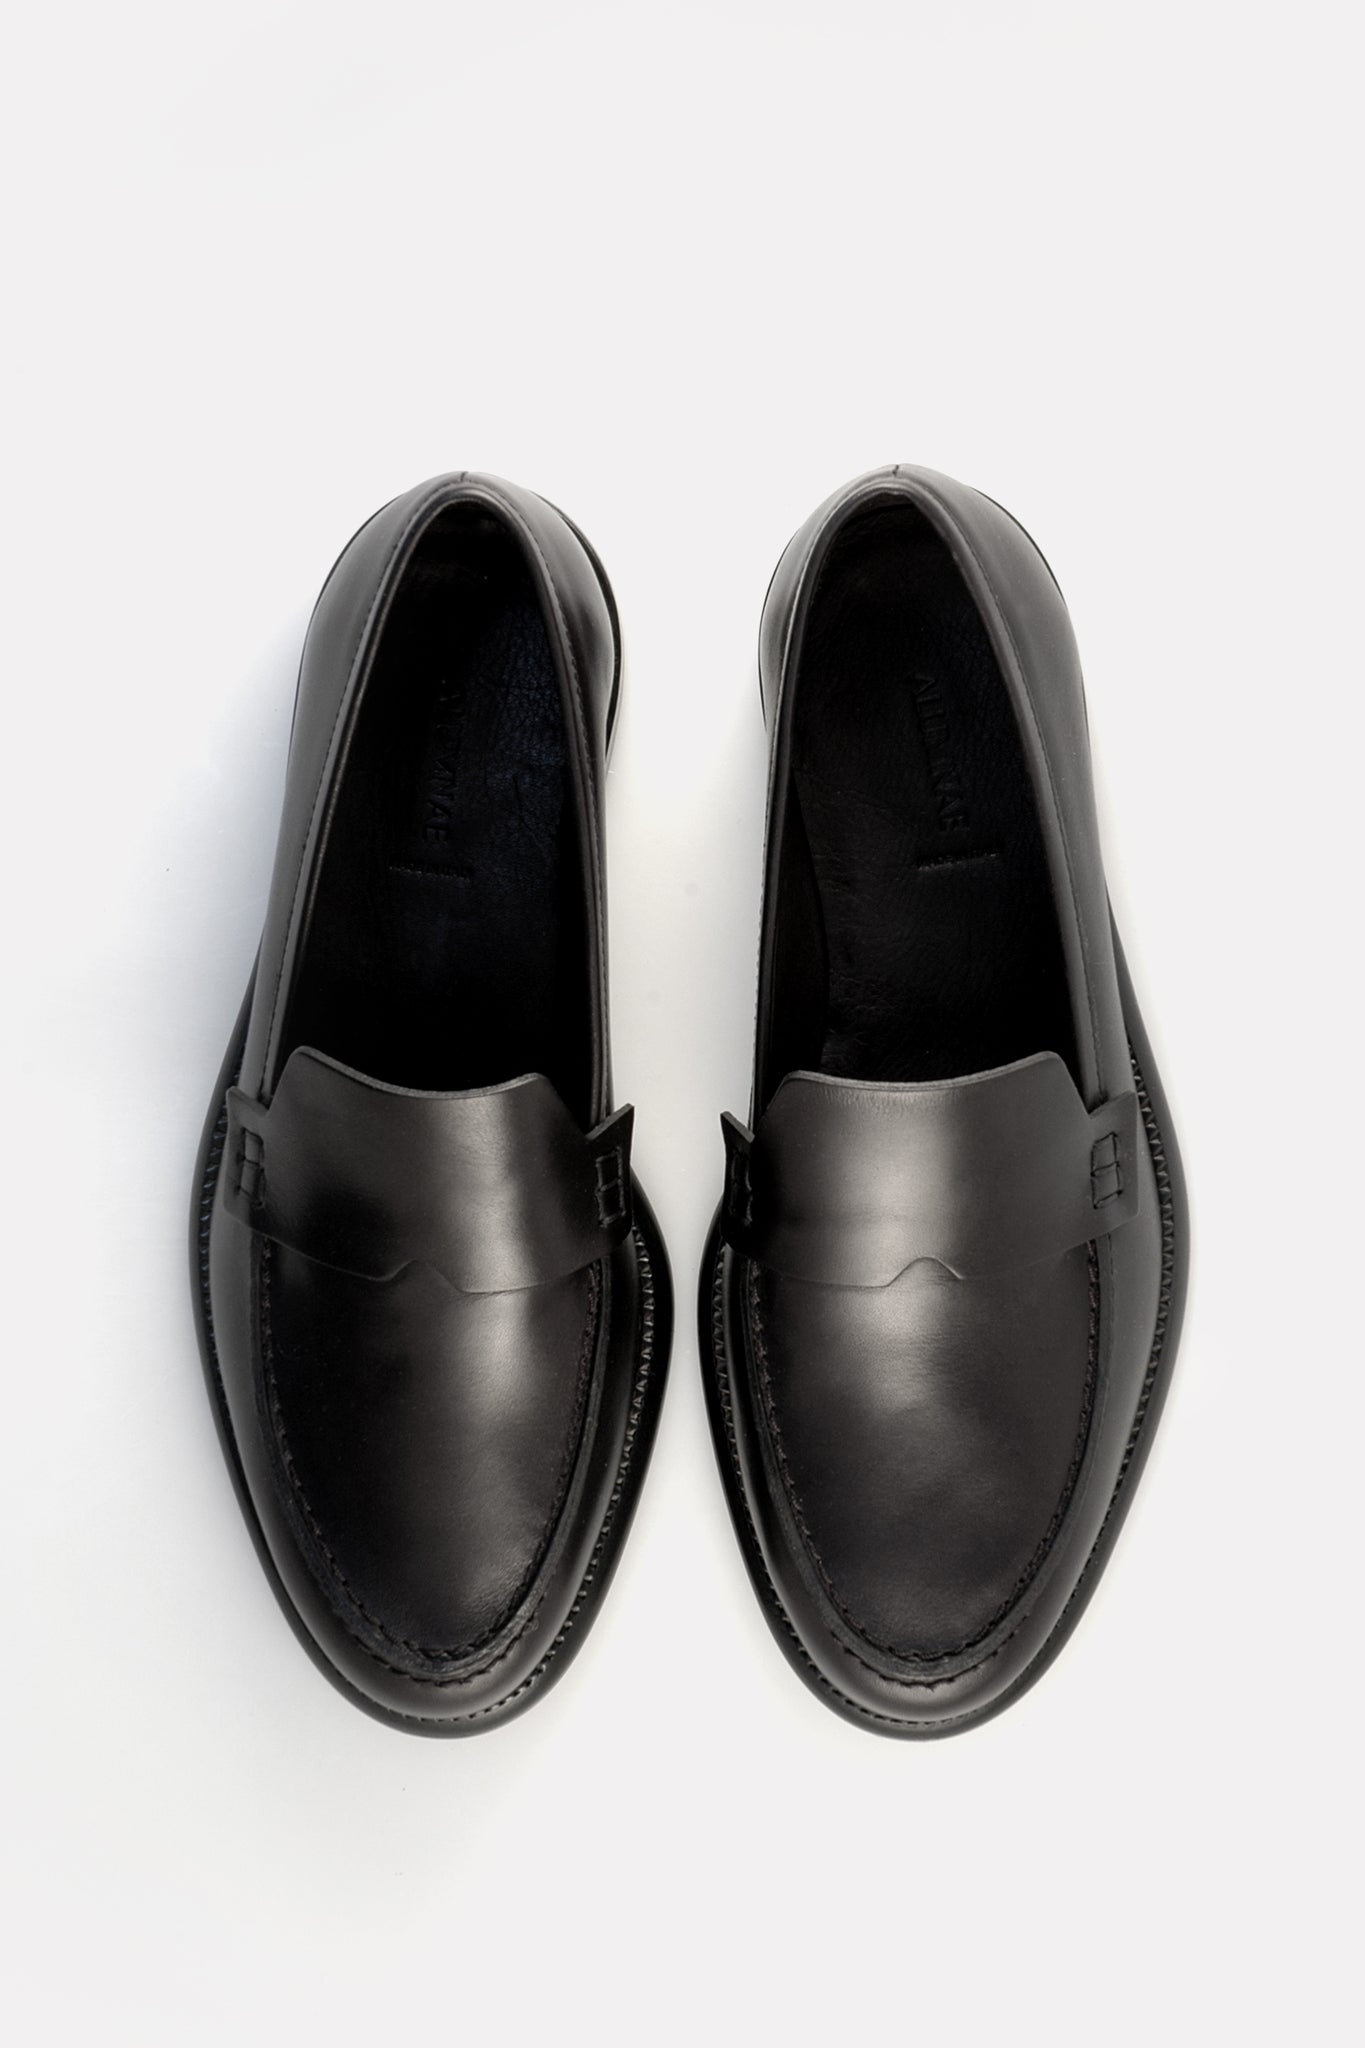 Minimalist Loafer Black Calf.